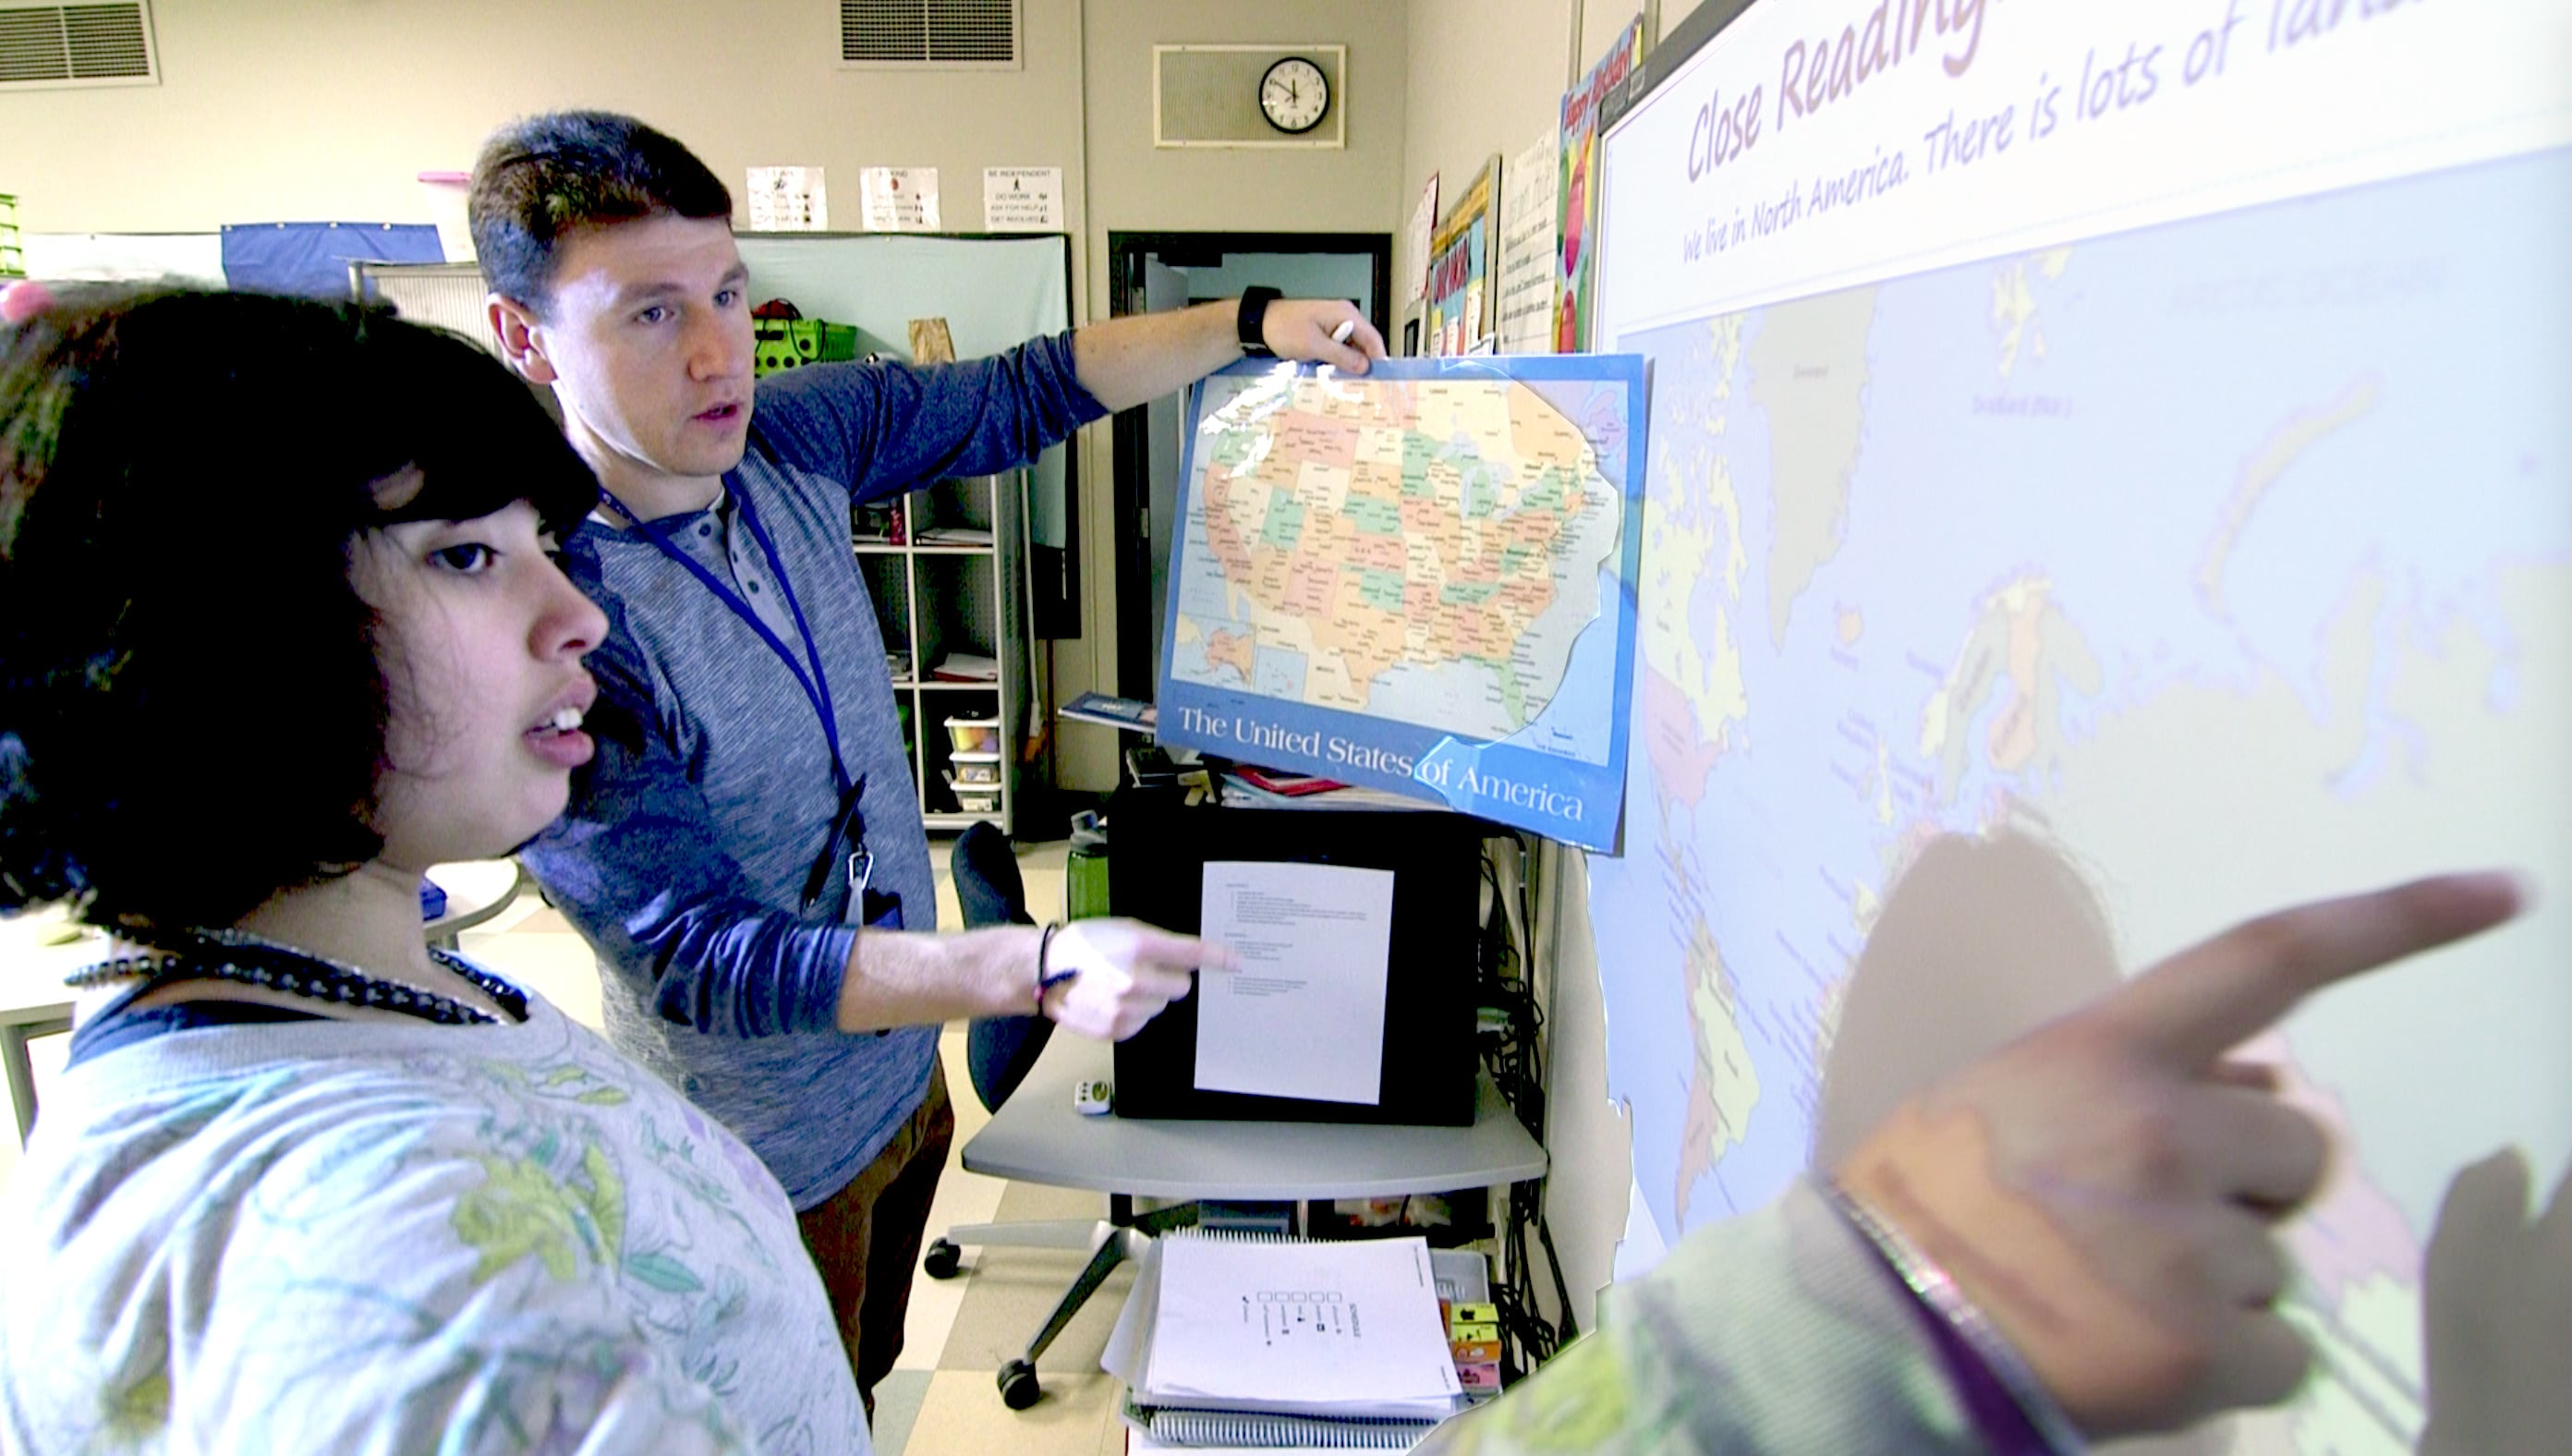 Erlind and a student comparing a map on the wall to a map in the lesson